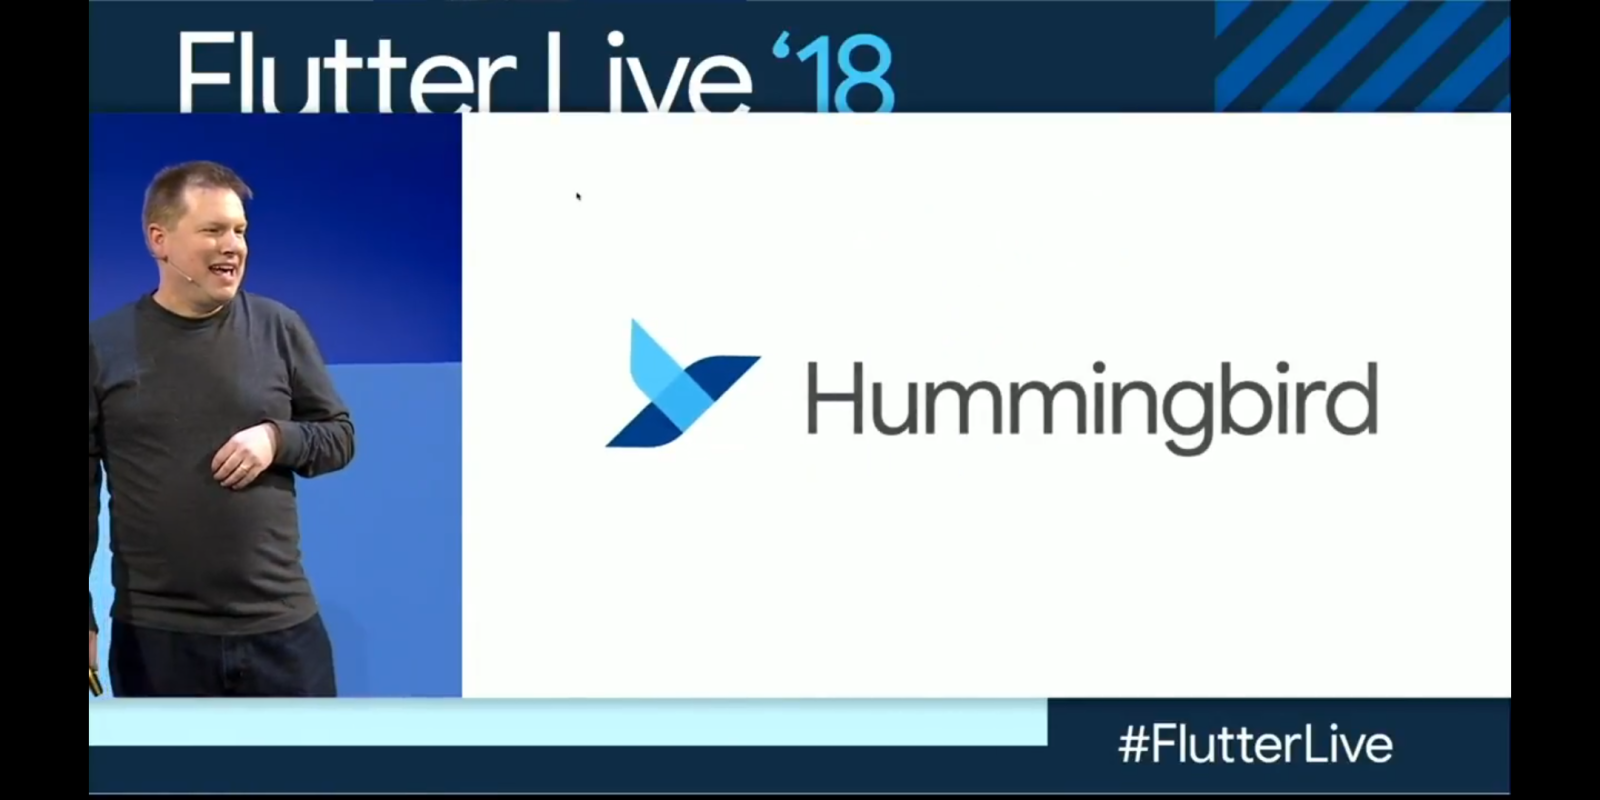 Google announces 'Hummingbird' project to bring Flutter applications to the web